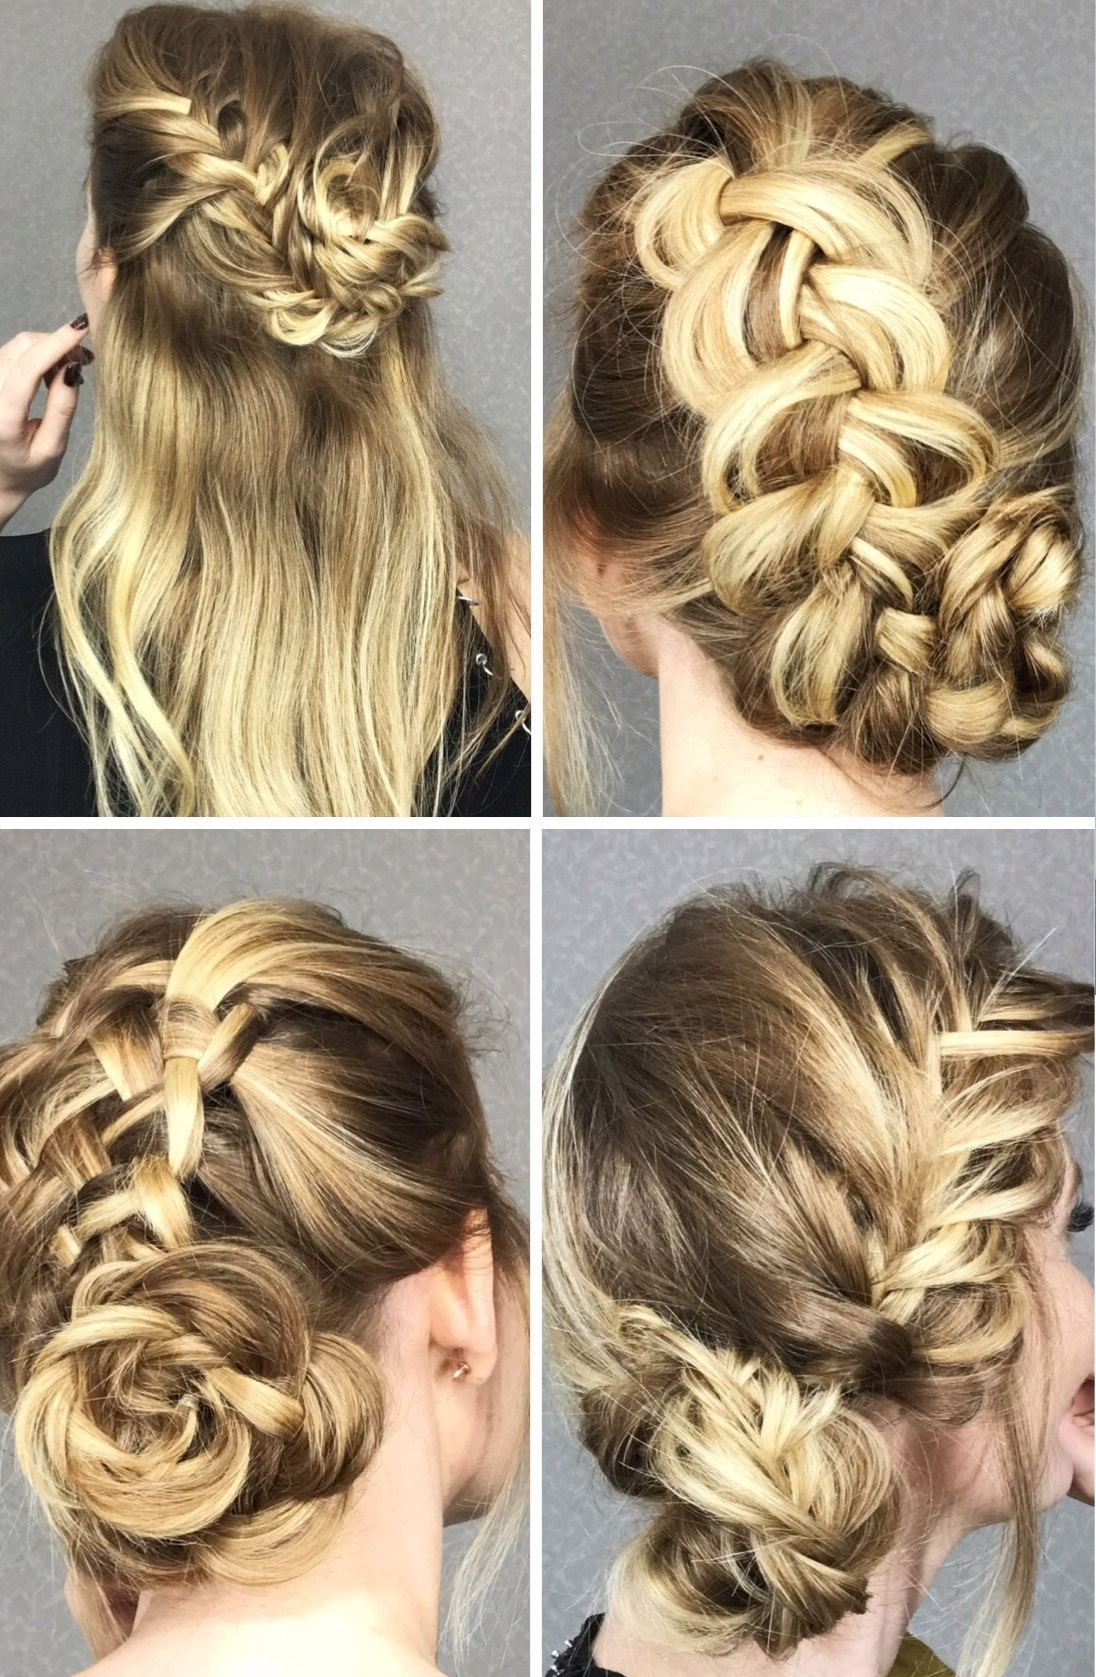 Current Intricate Braided Updo Hairstyles For 4 Cute Braided Hairstyles In Easy Step By Step Tutorials (View 4 of 20)